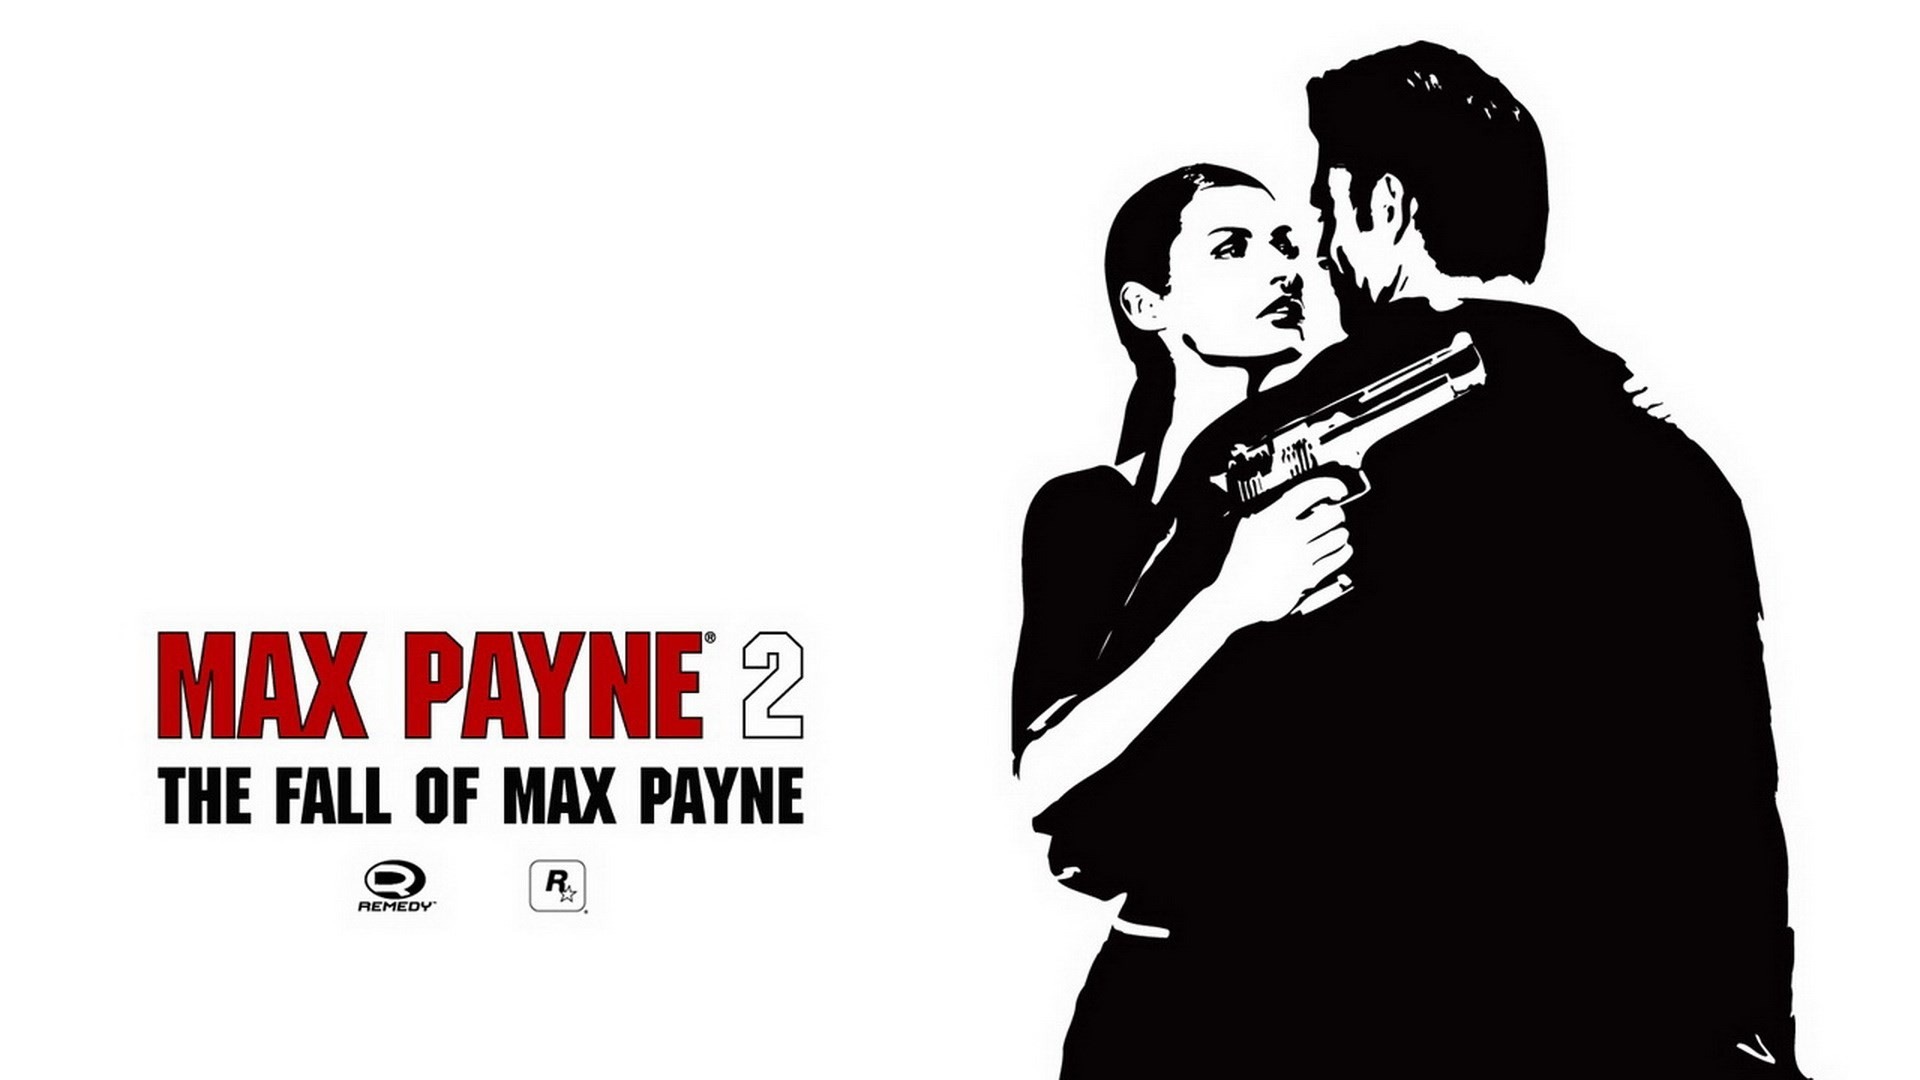 1920x1080 Full size max payne 2 the fall of max payne